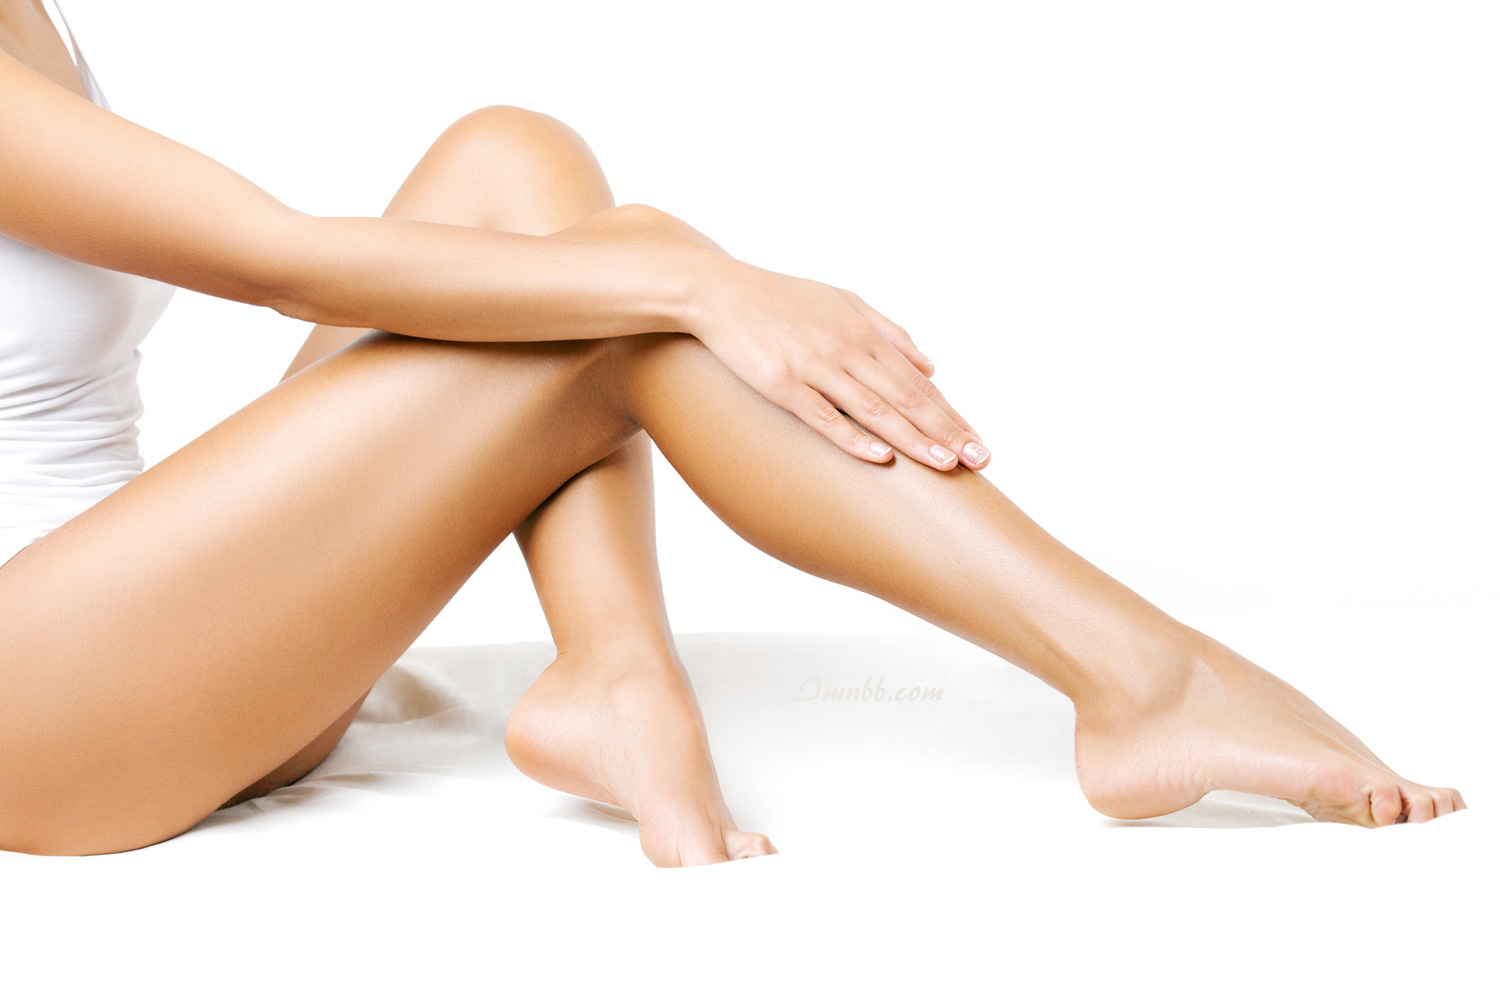 Shave Your Legs With Coconut Oil